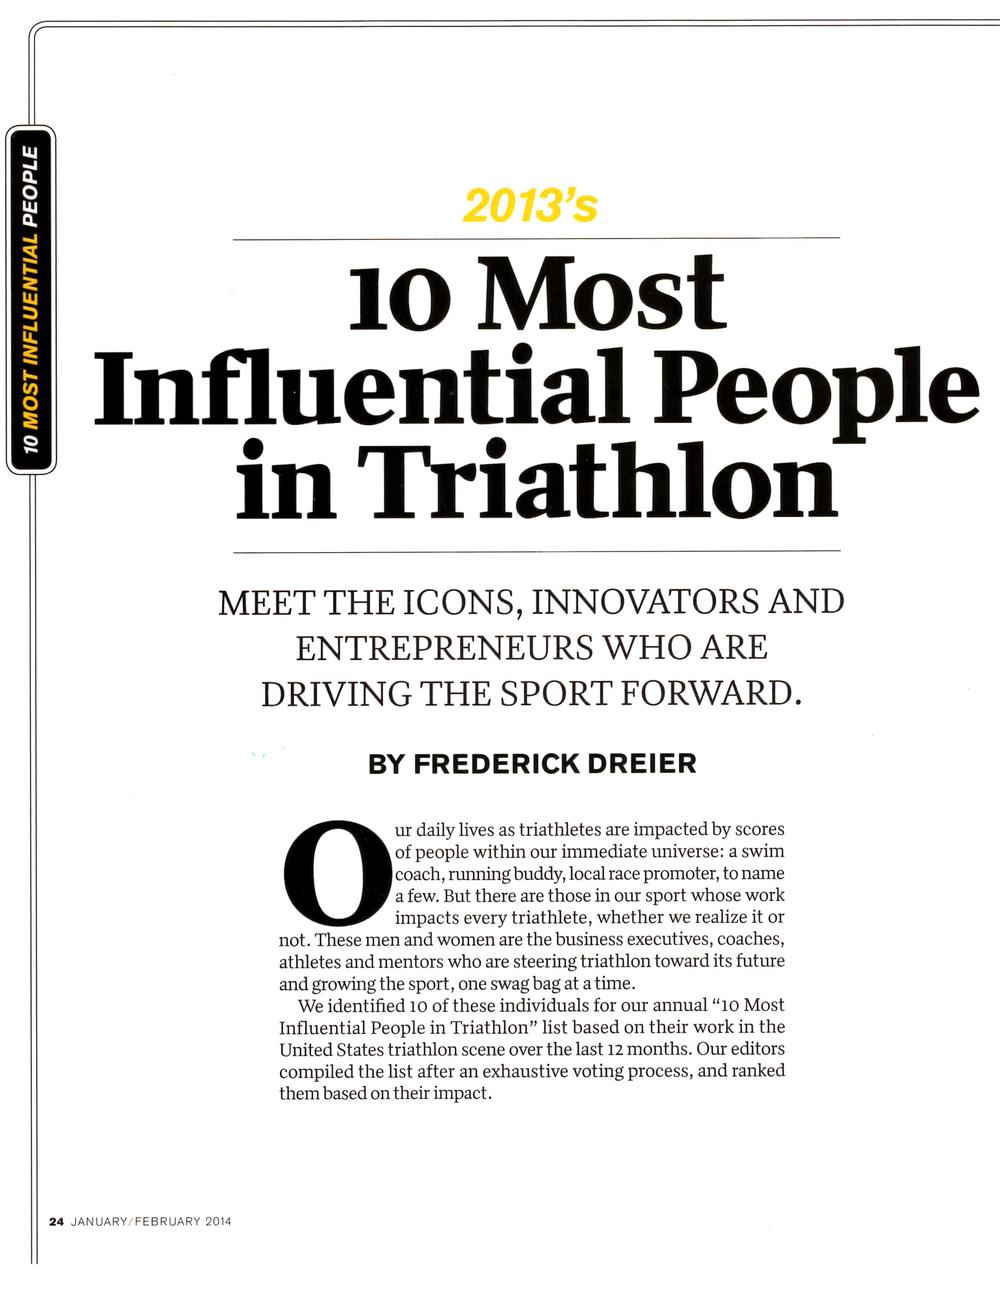 G.Jorgensen Inside Tri Dec 2013 10 Most Influential Page 1.jpg